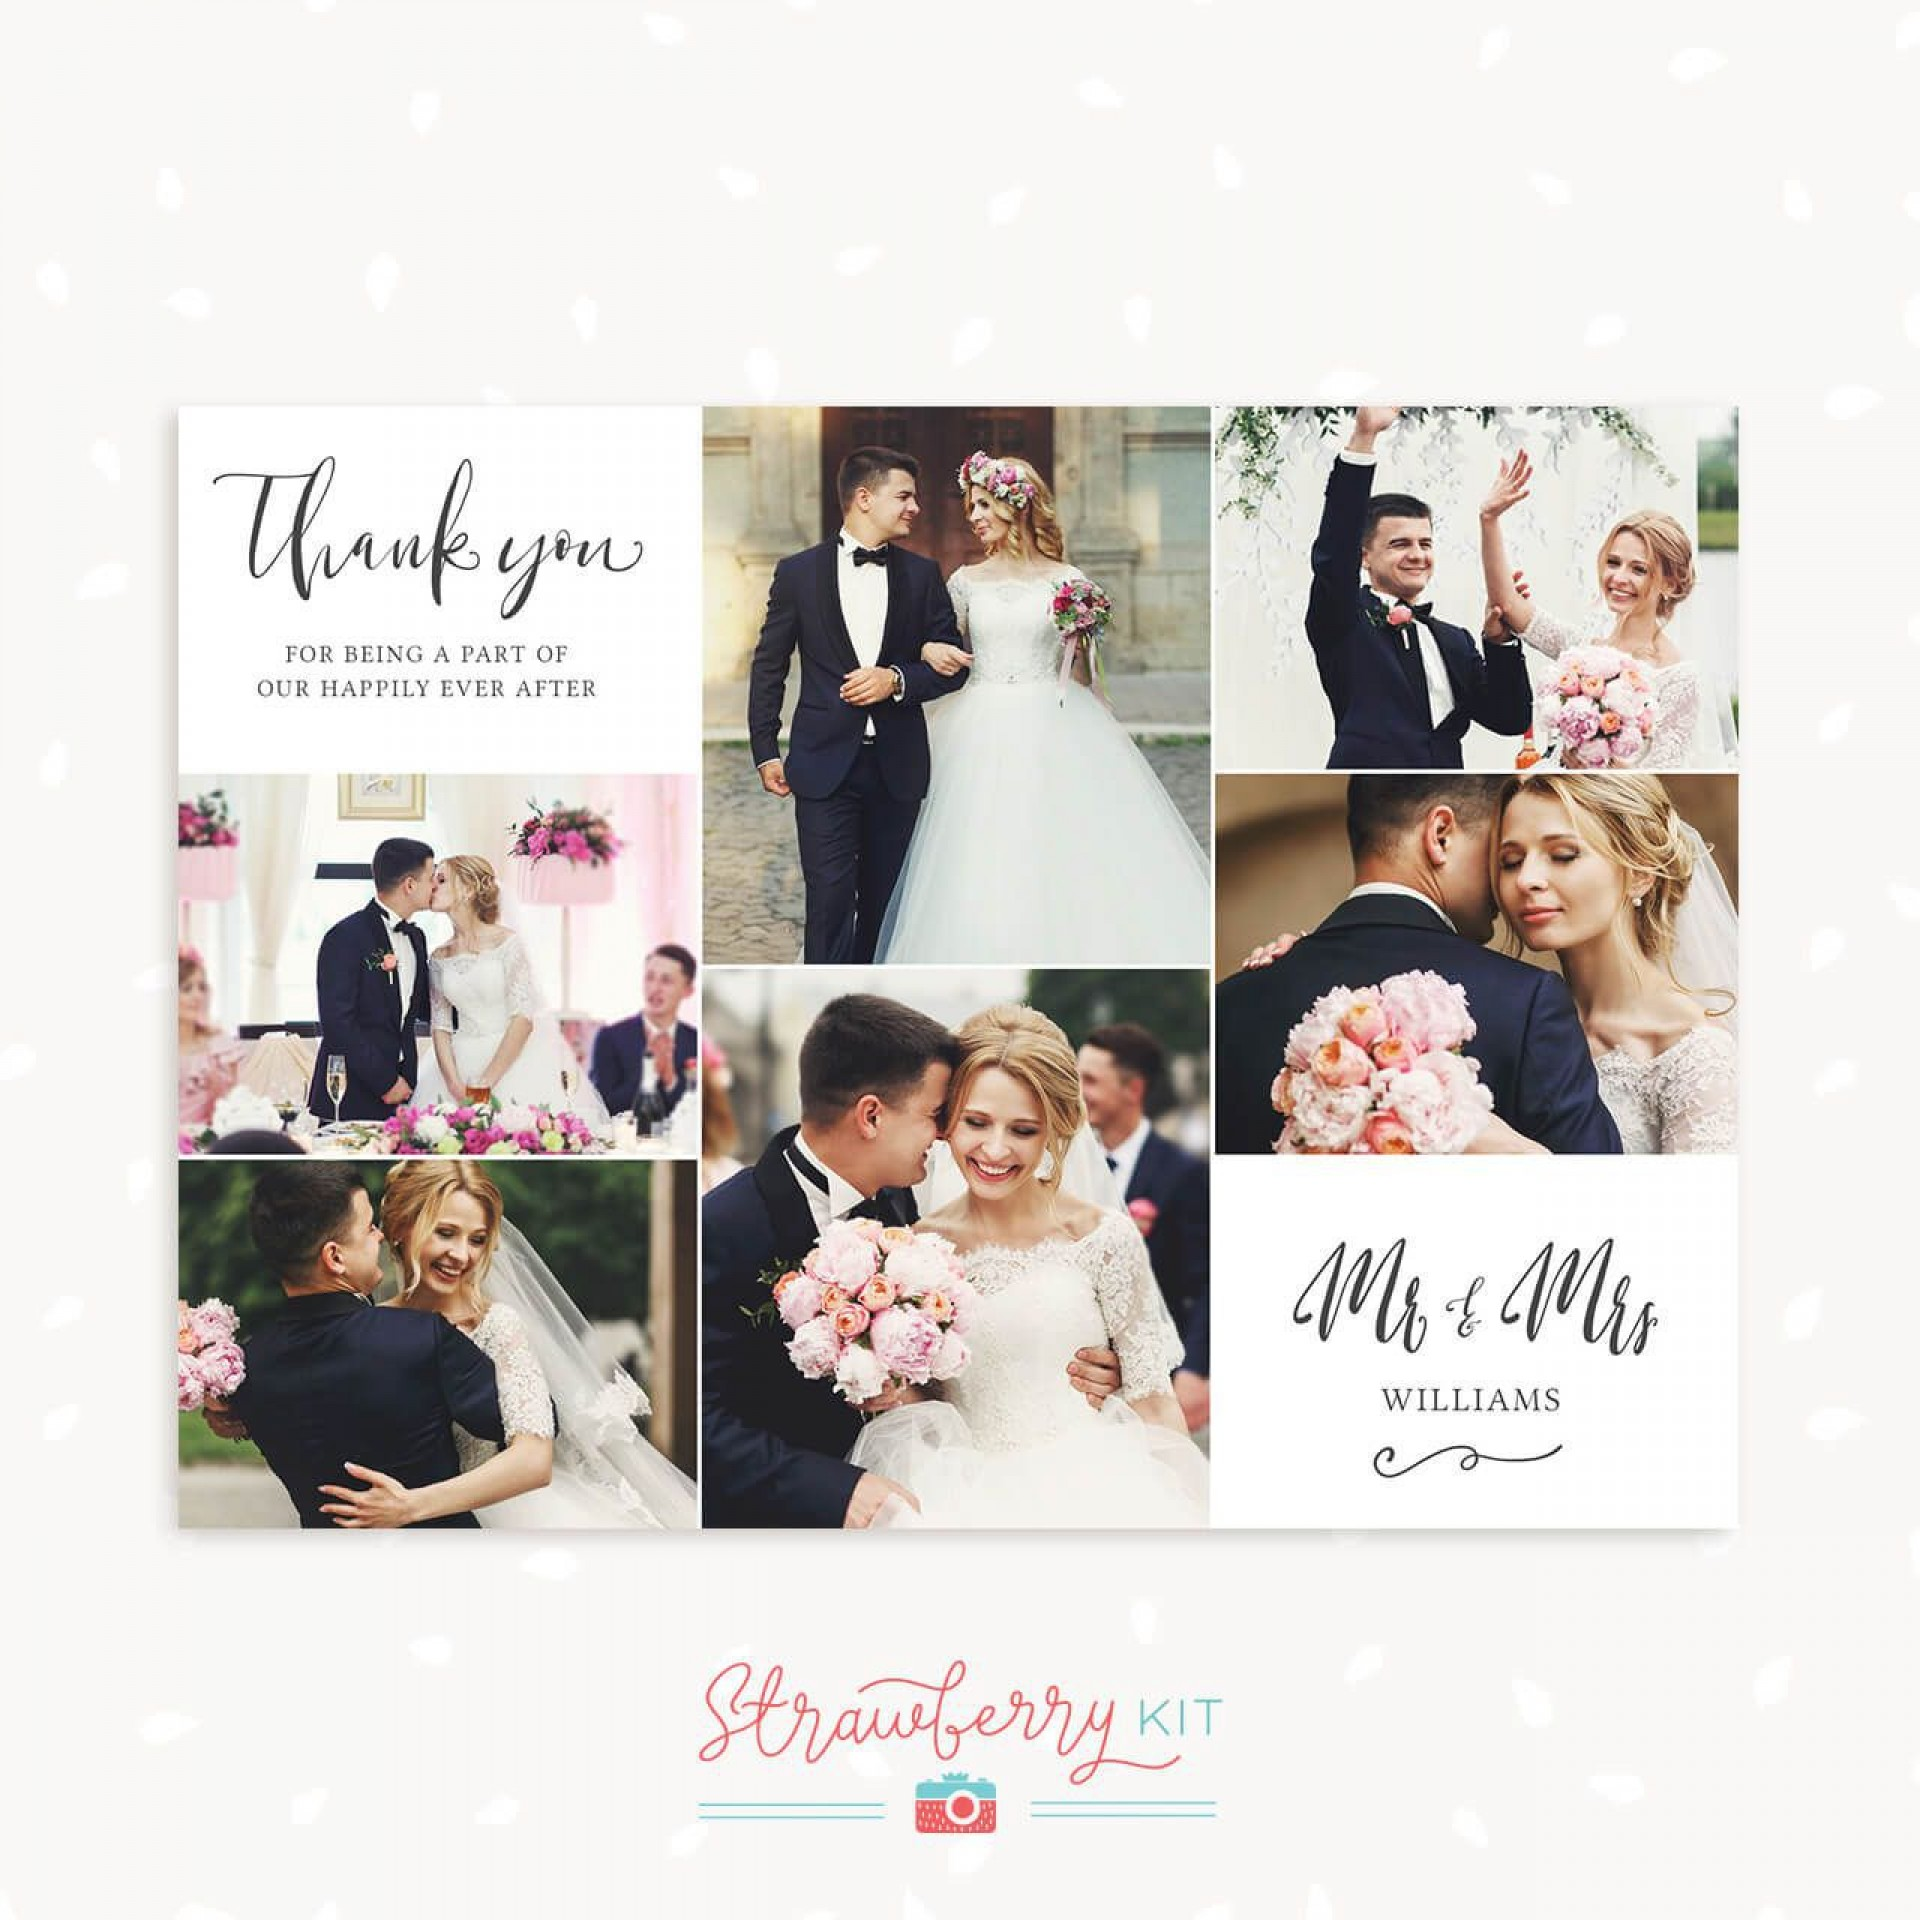 003 Singular Wedding Thank You Card Template Psd Picture  Free1920